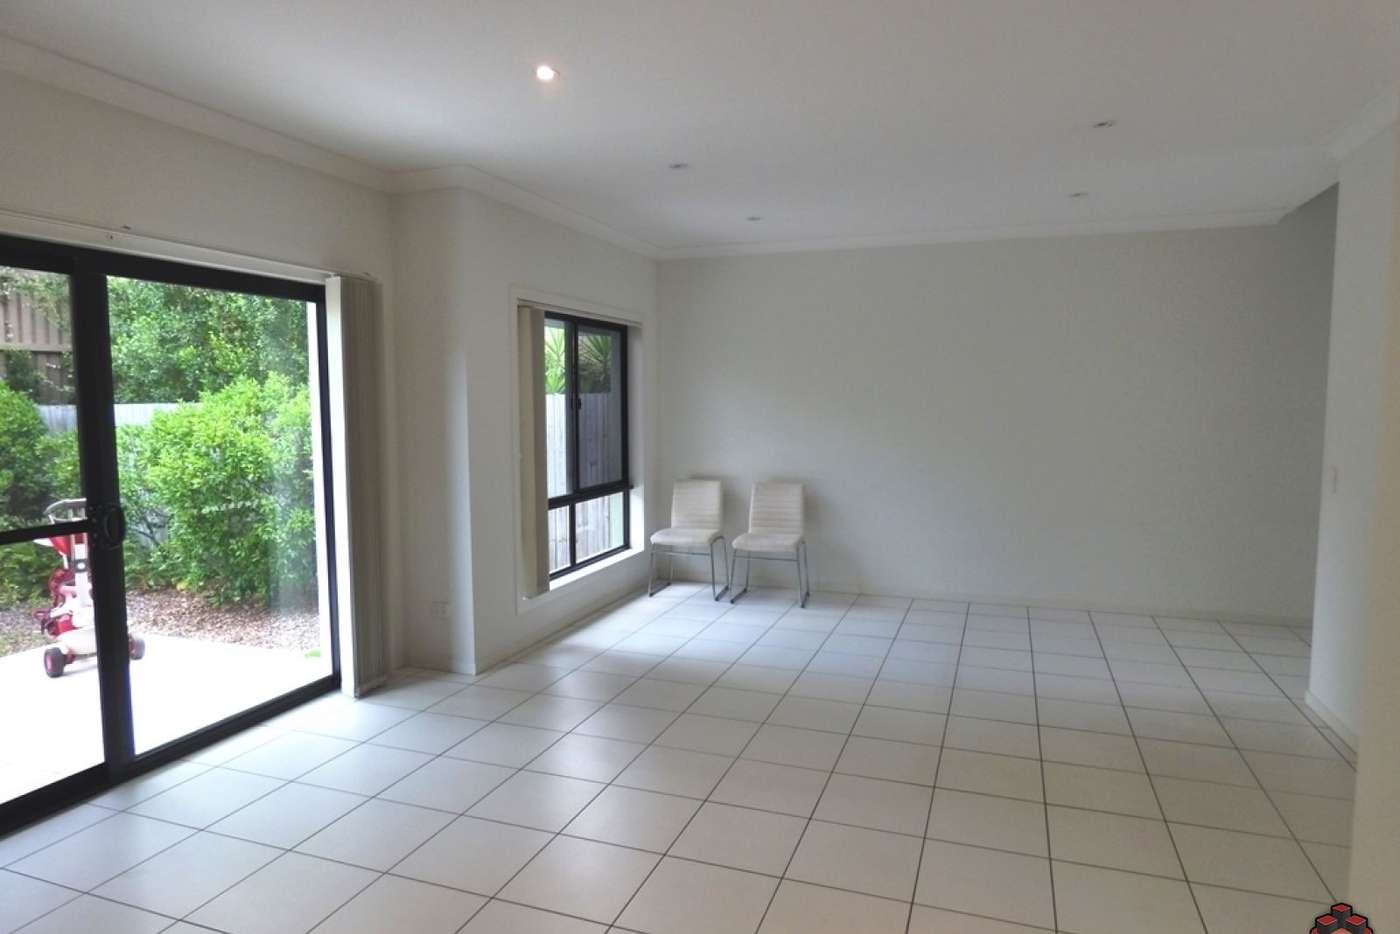 Seventh view of Homely townhouse listing, ID:21066417/16 Surbiton Court, Carindale QLD 4152